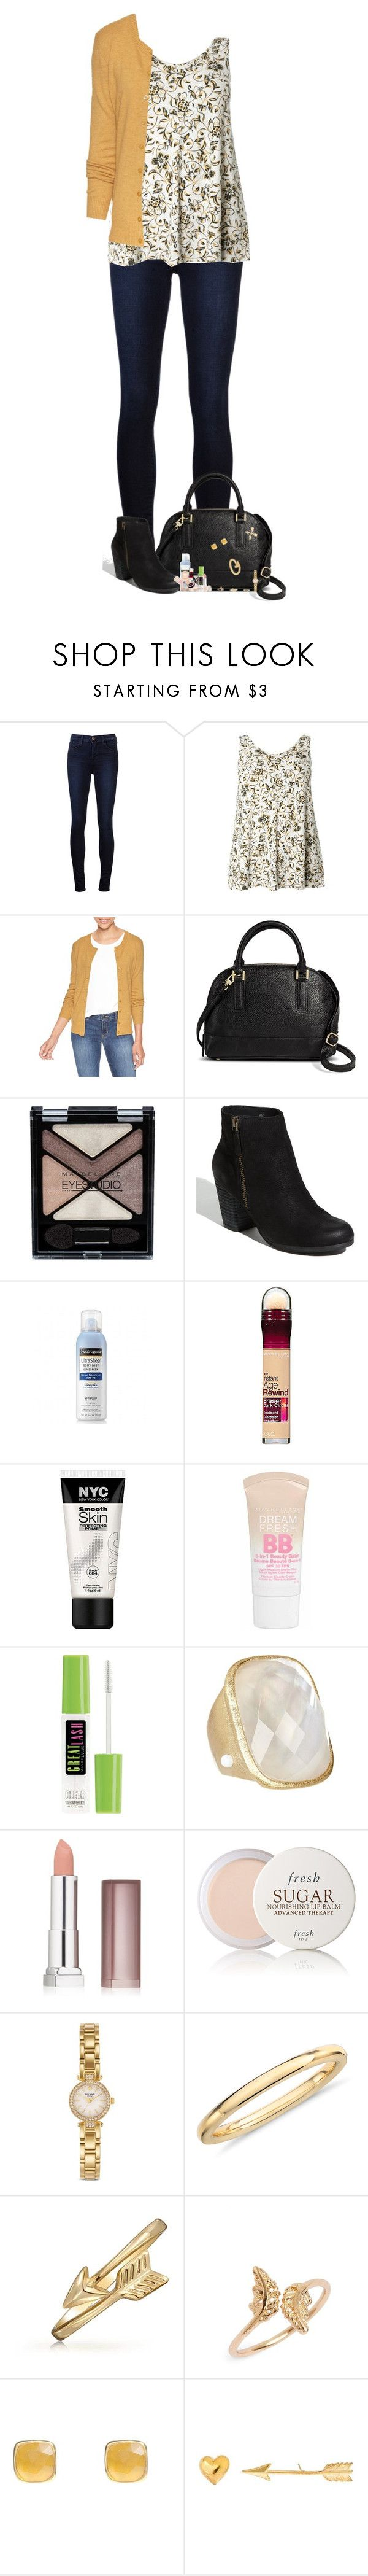 """""""There Wasn't A Wrong Or A Right He Could Choose"""" by nessiecullen2286 ❤ liked on Polyvore featuring J Brand, Evans, Merona, Maybelline, BP., Neutrogena, Rivka Friedman, Fresh, Kate Spade and Blue Nile"""